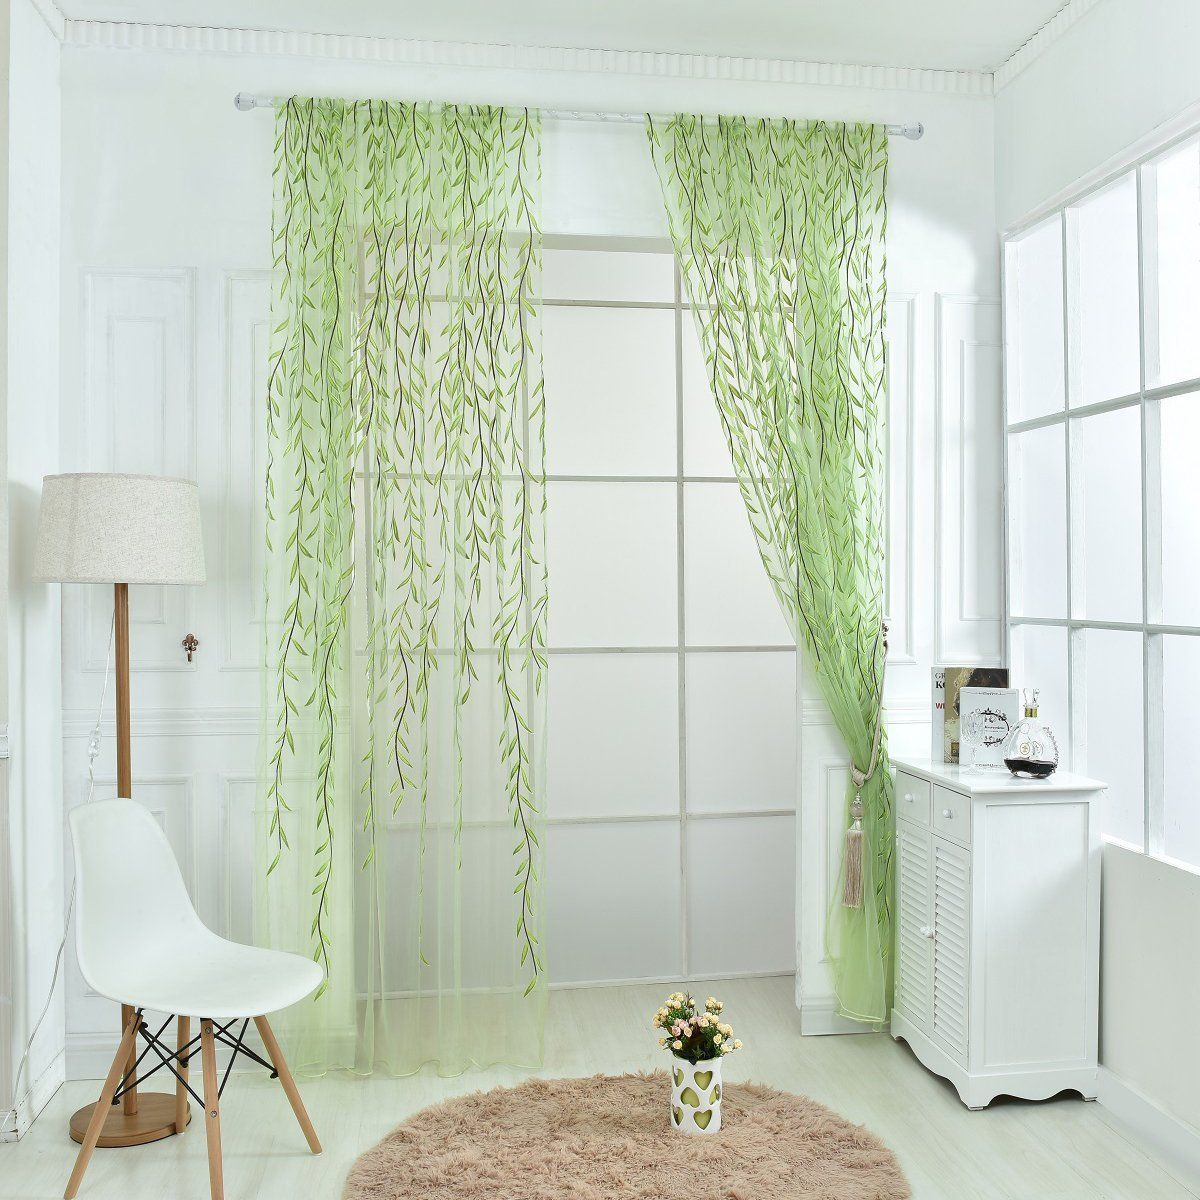 Amazon Com Edal Willow Tulle Voile Door Window Curtain Drape Panel Sheer Scarf Valances Green Home Kitchen Curtains Curtains Living Room Drapes Curtains